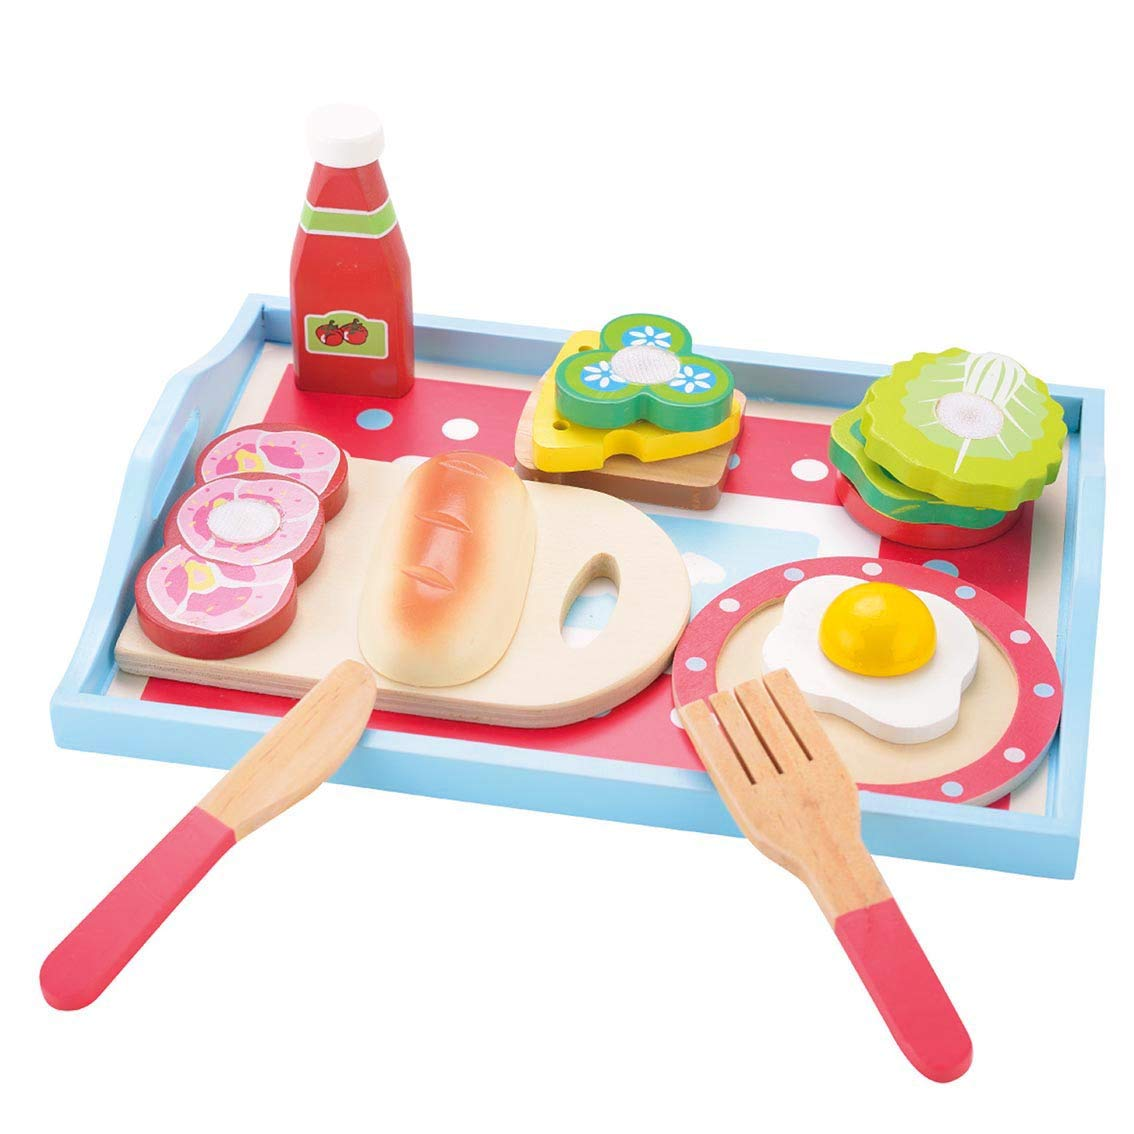 Play Food for Toddlers Kids Wooden New Breakfast Sandwich Set Pretend Food (15pcs) By KIDS TOYLAND   B0794X8C3H